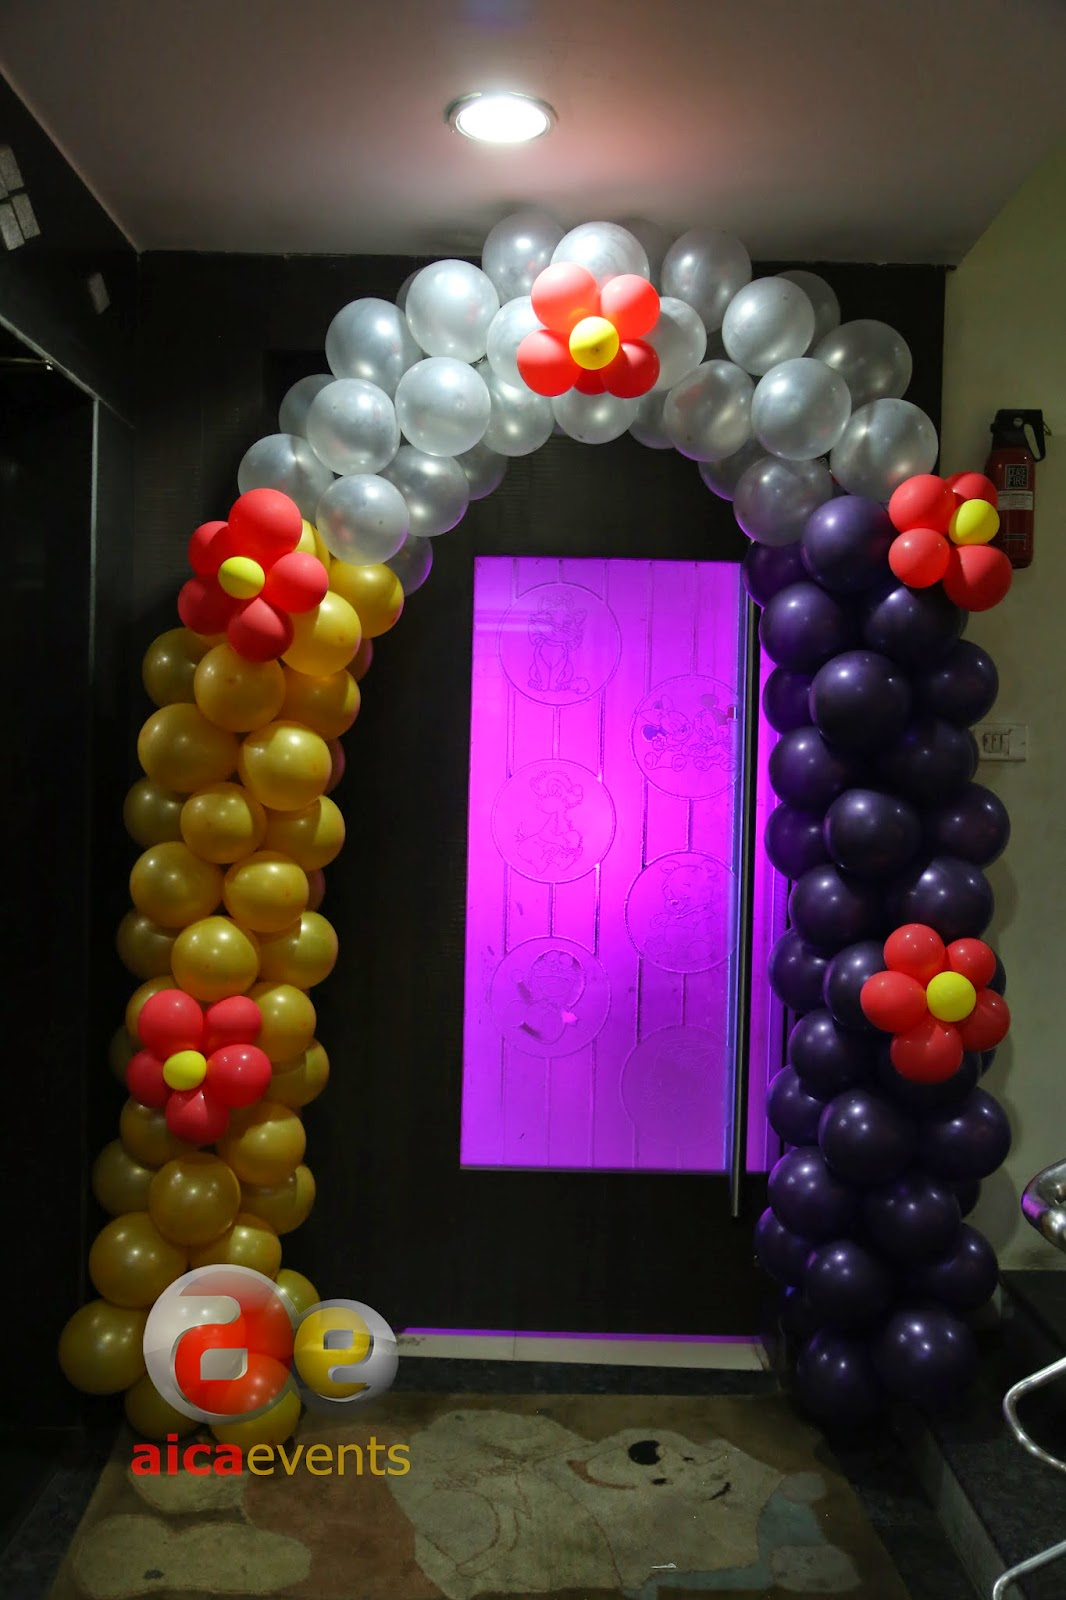 Princess Balloon Decoration Aicaevents Princess And Chariot Themed Birthday Decorations